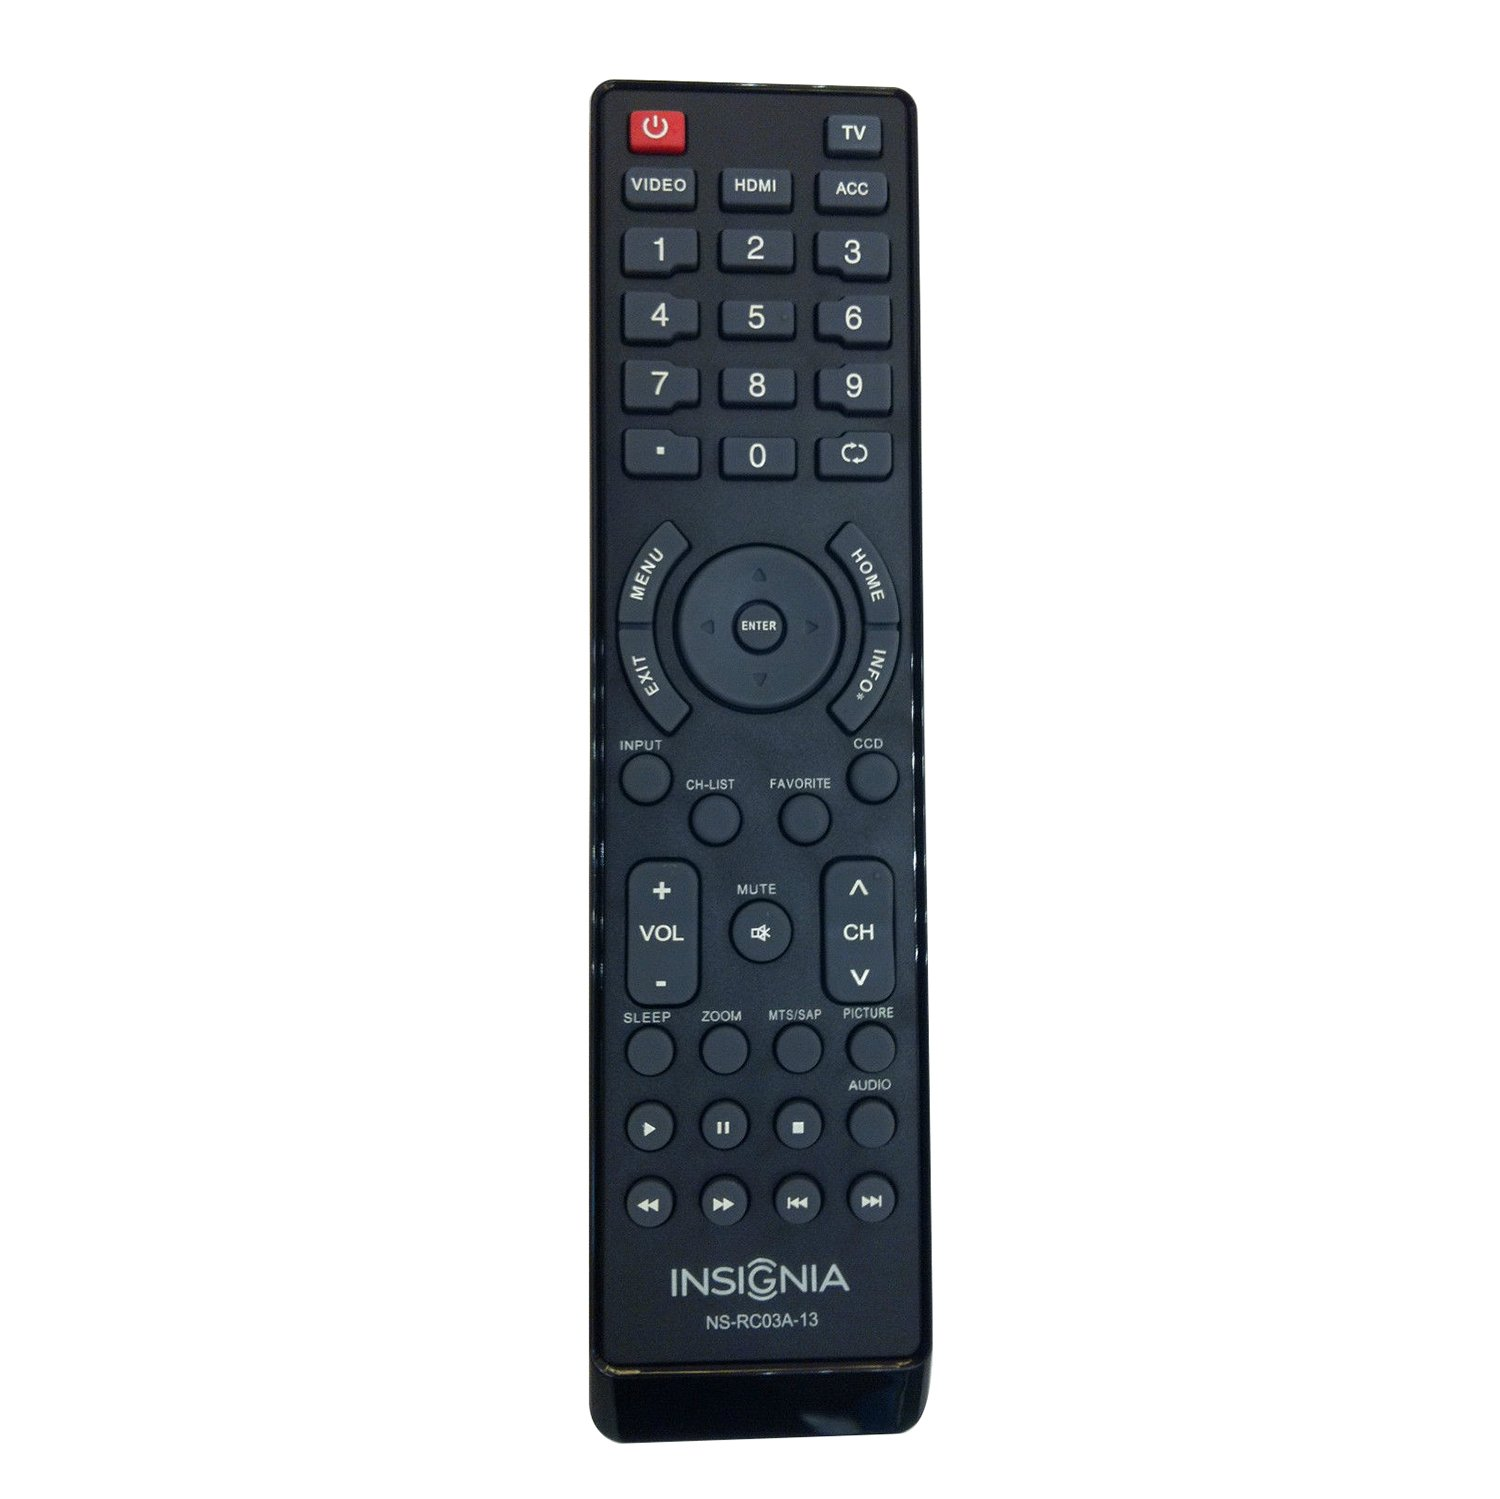 Amazon.com: NEW remote NS-RC02A-12 remote For INSIGNIA LED and LCD TV  NS-32L120A13 NS-40L240A13 NS-32E320A13 NS-19E320A13 NS-39L240A13  NS-42E440A13 ...